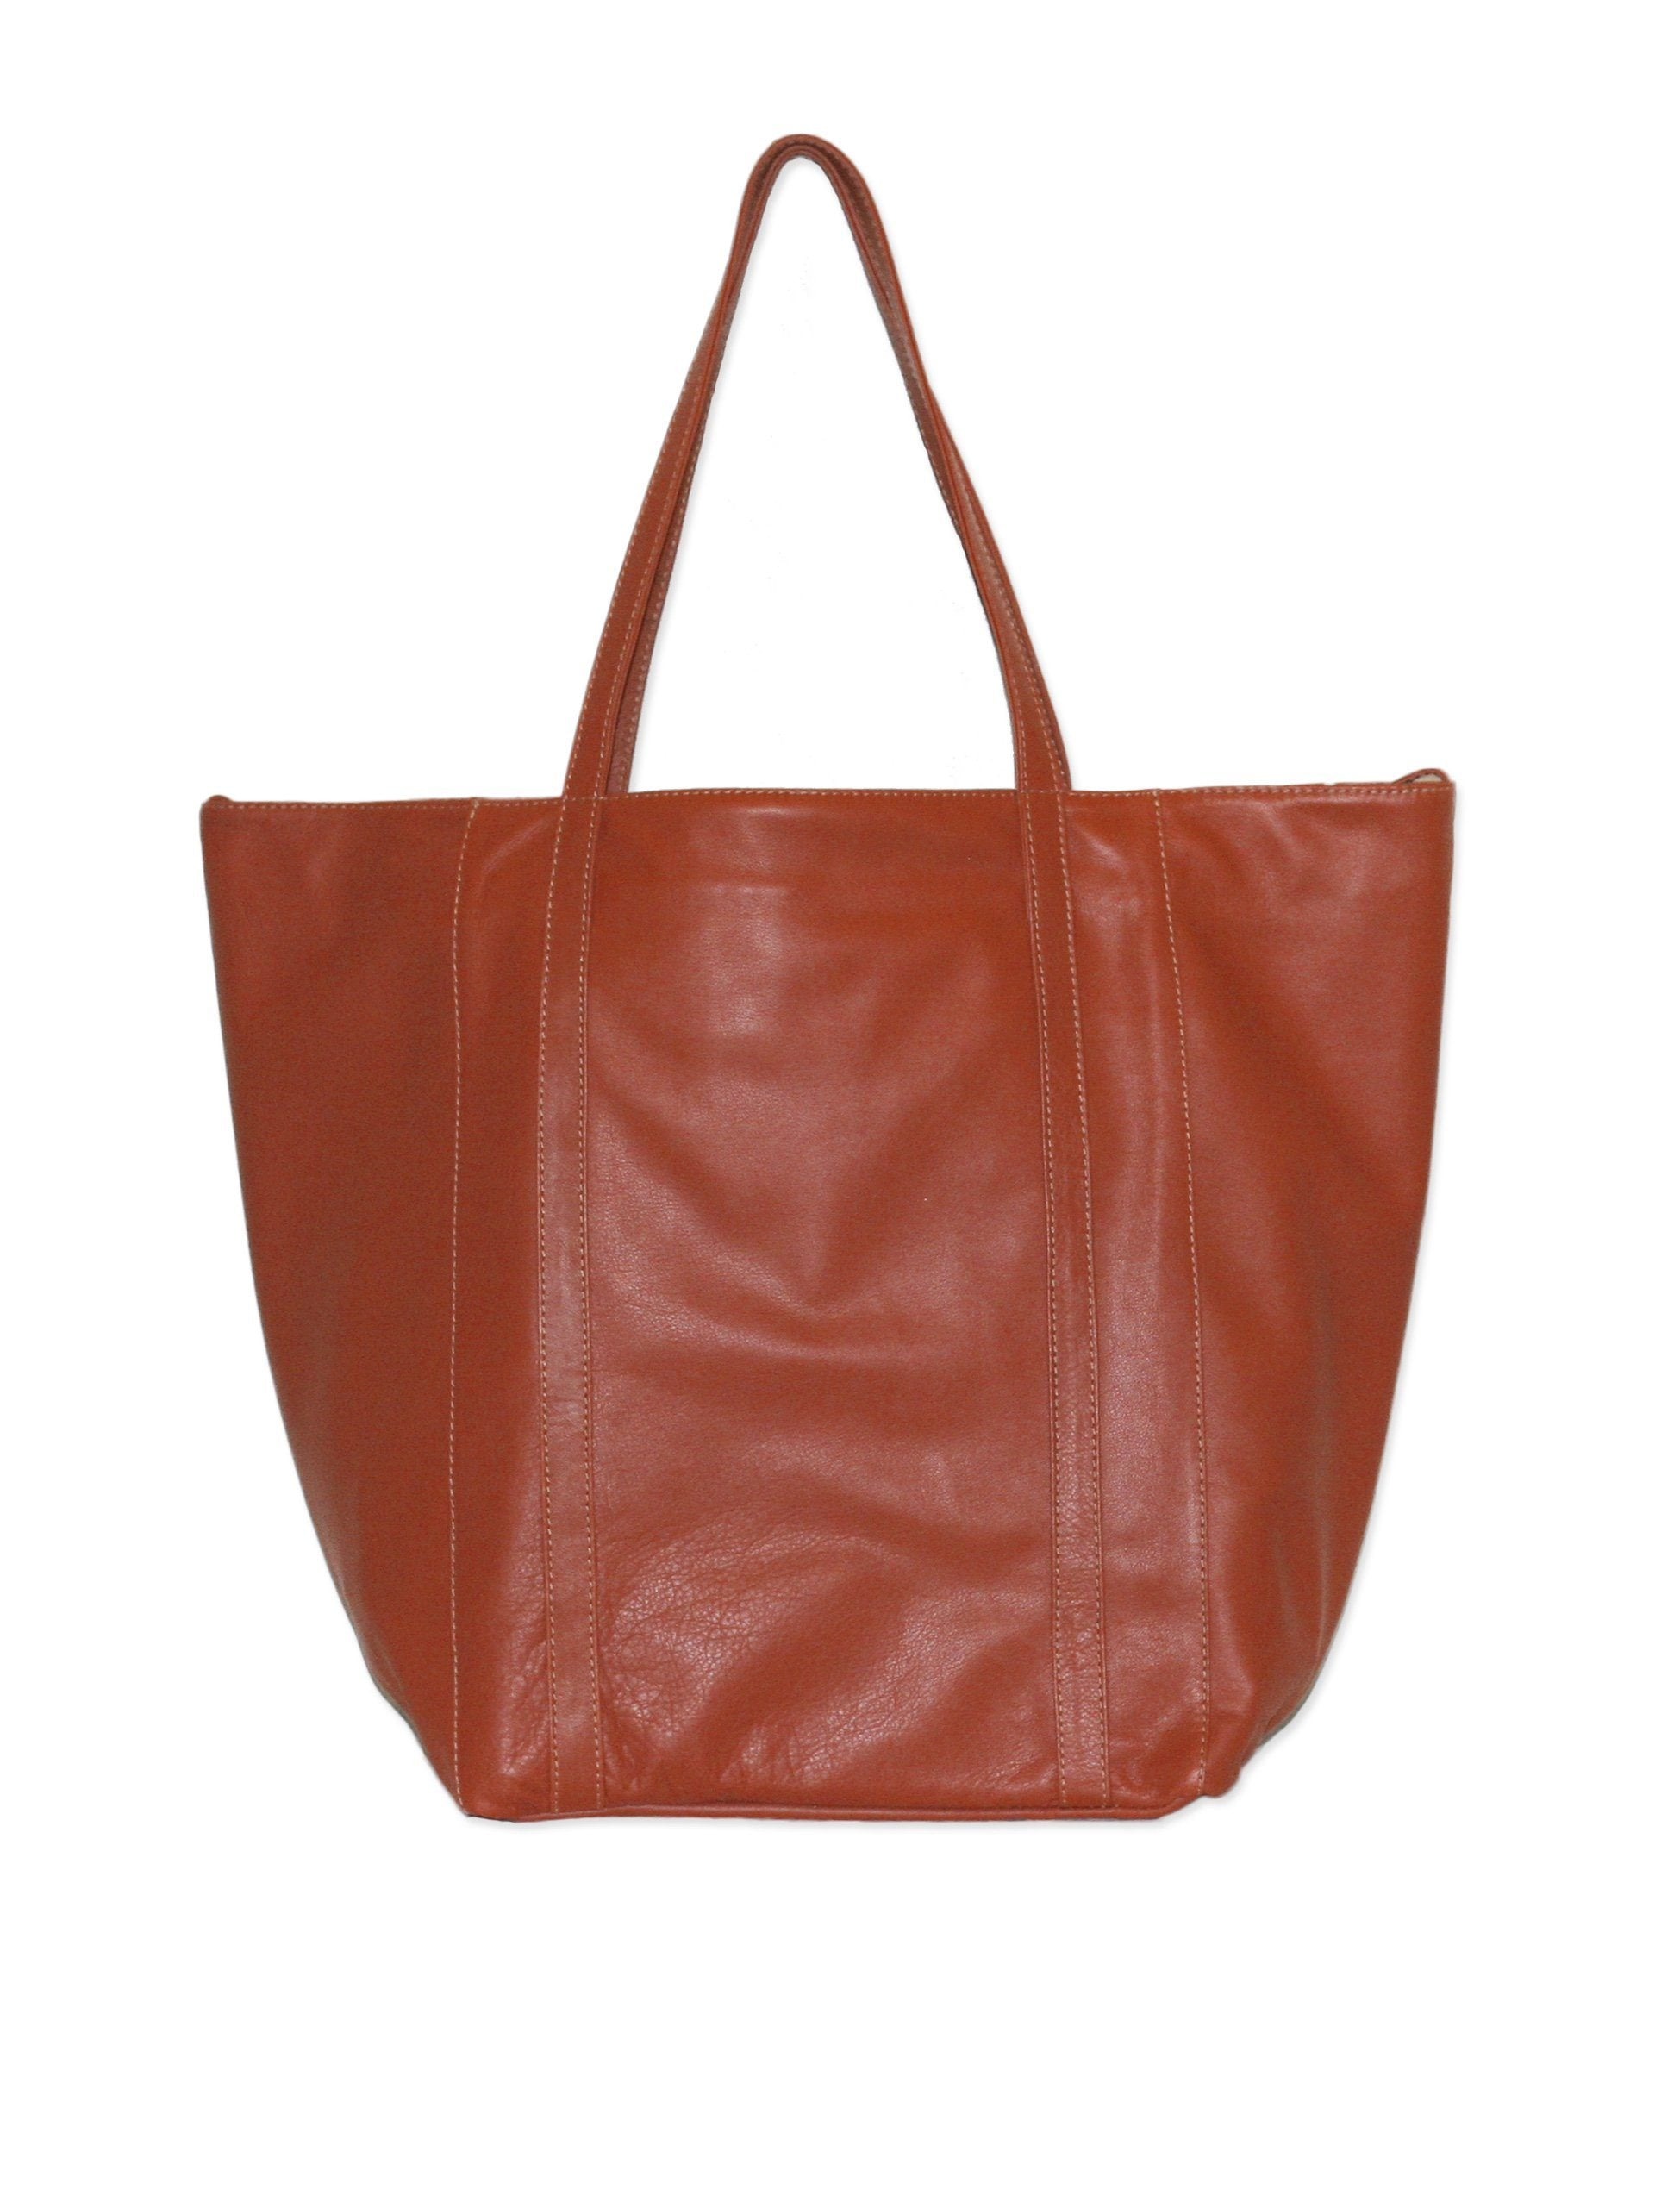 The Commuter Tote